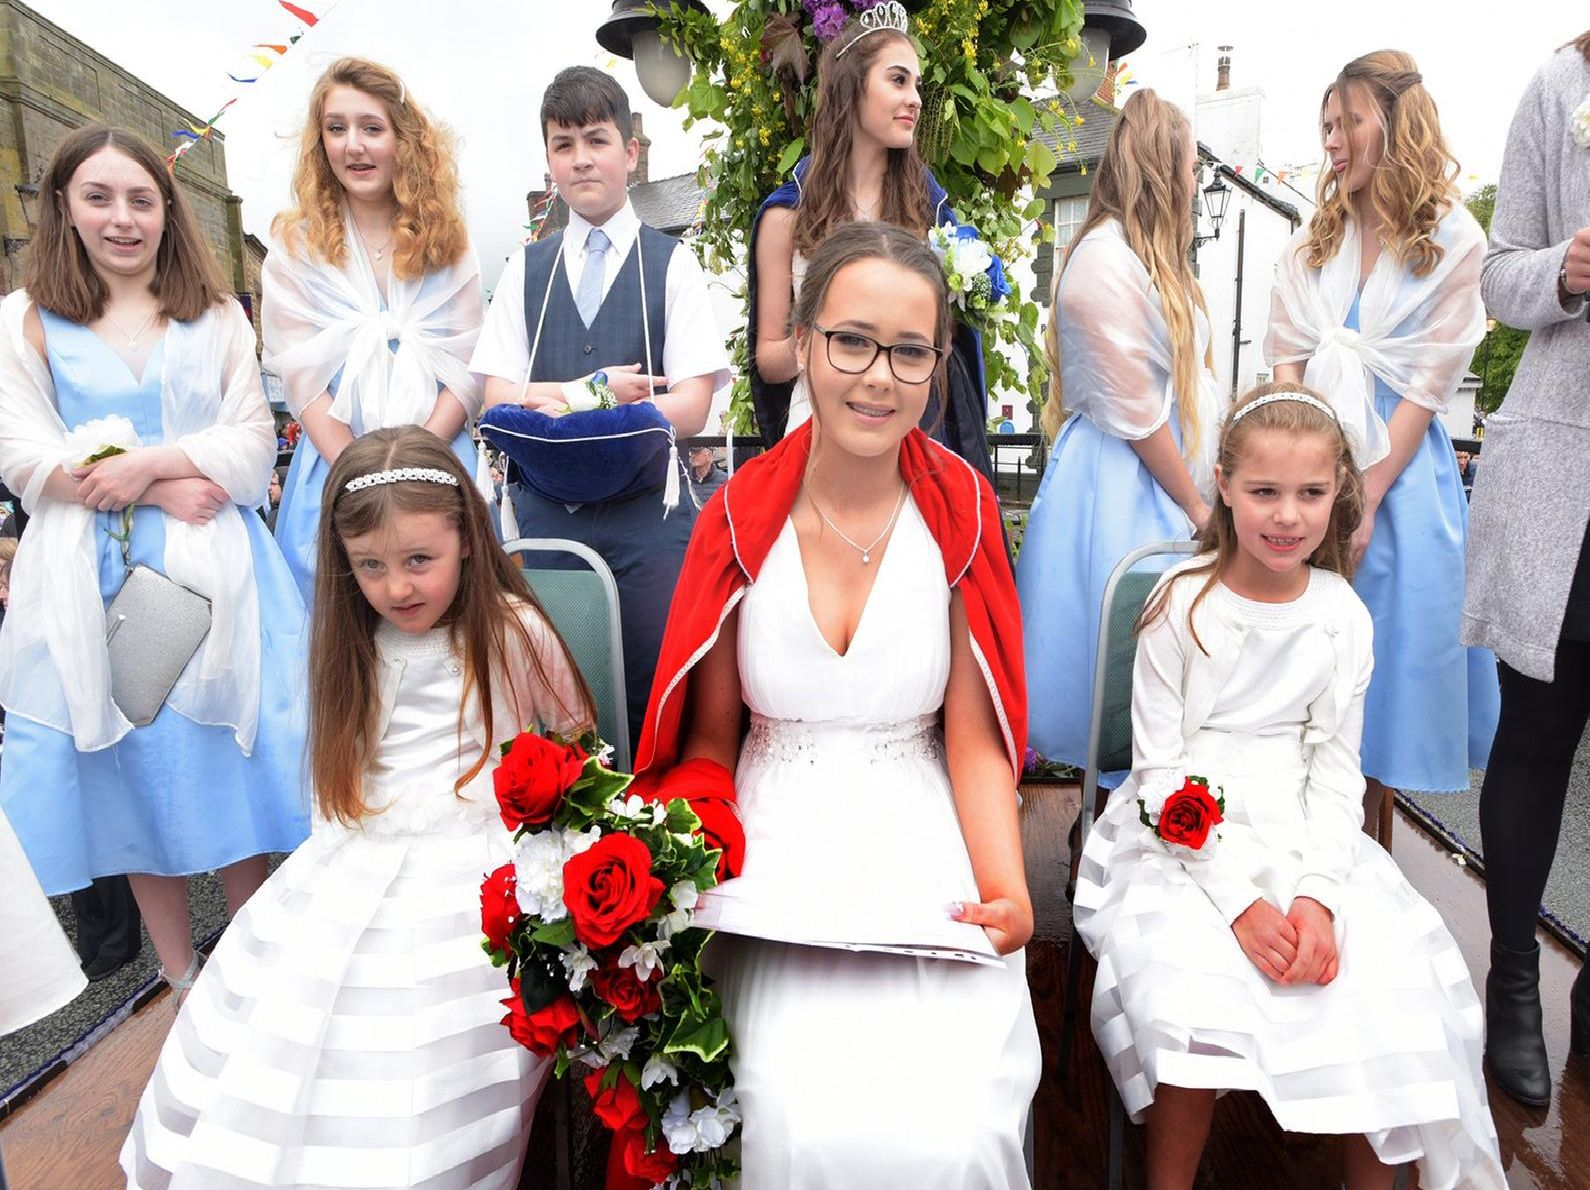 Retiring Queen Ellen QWellings and 2019 Queen Emily Guy and entourage in Garstang's Annual Children's Festival parade.